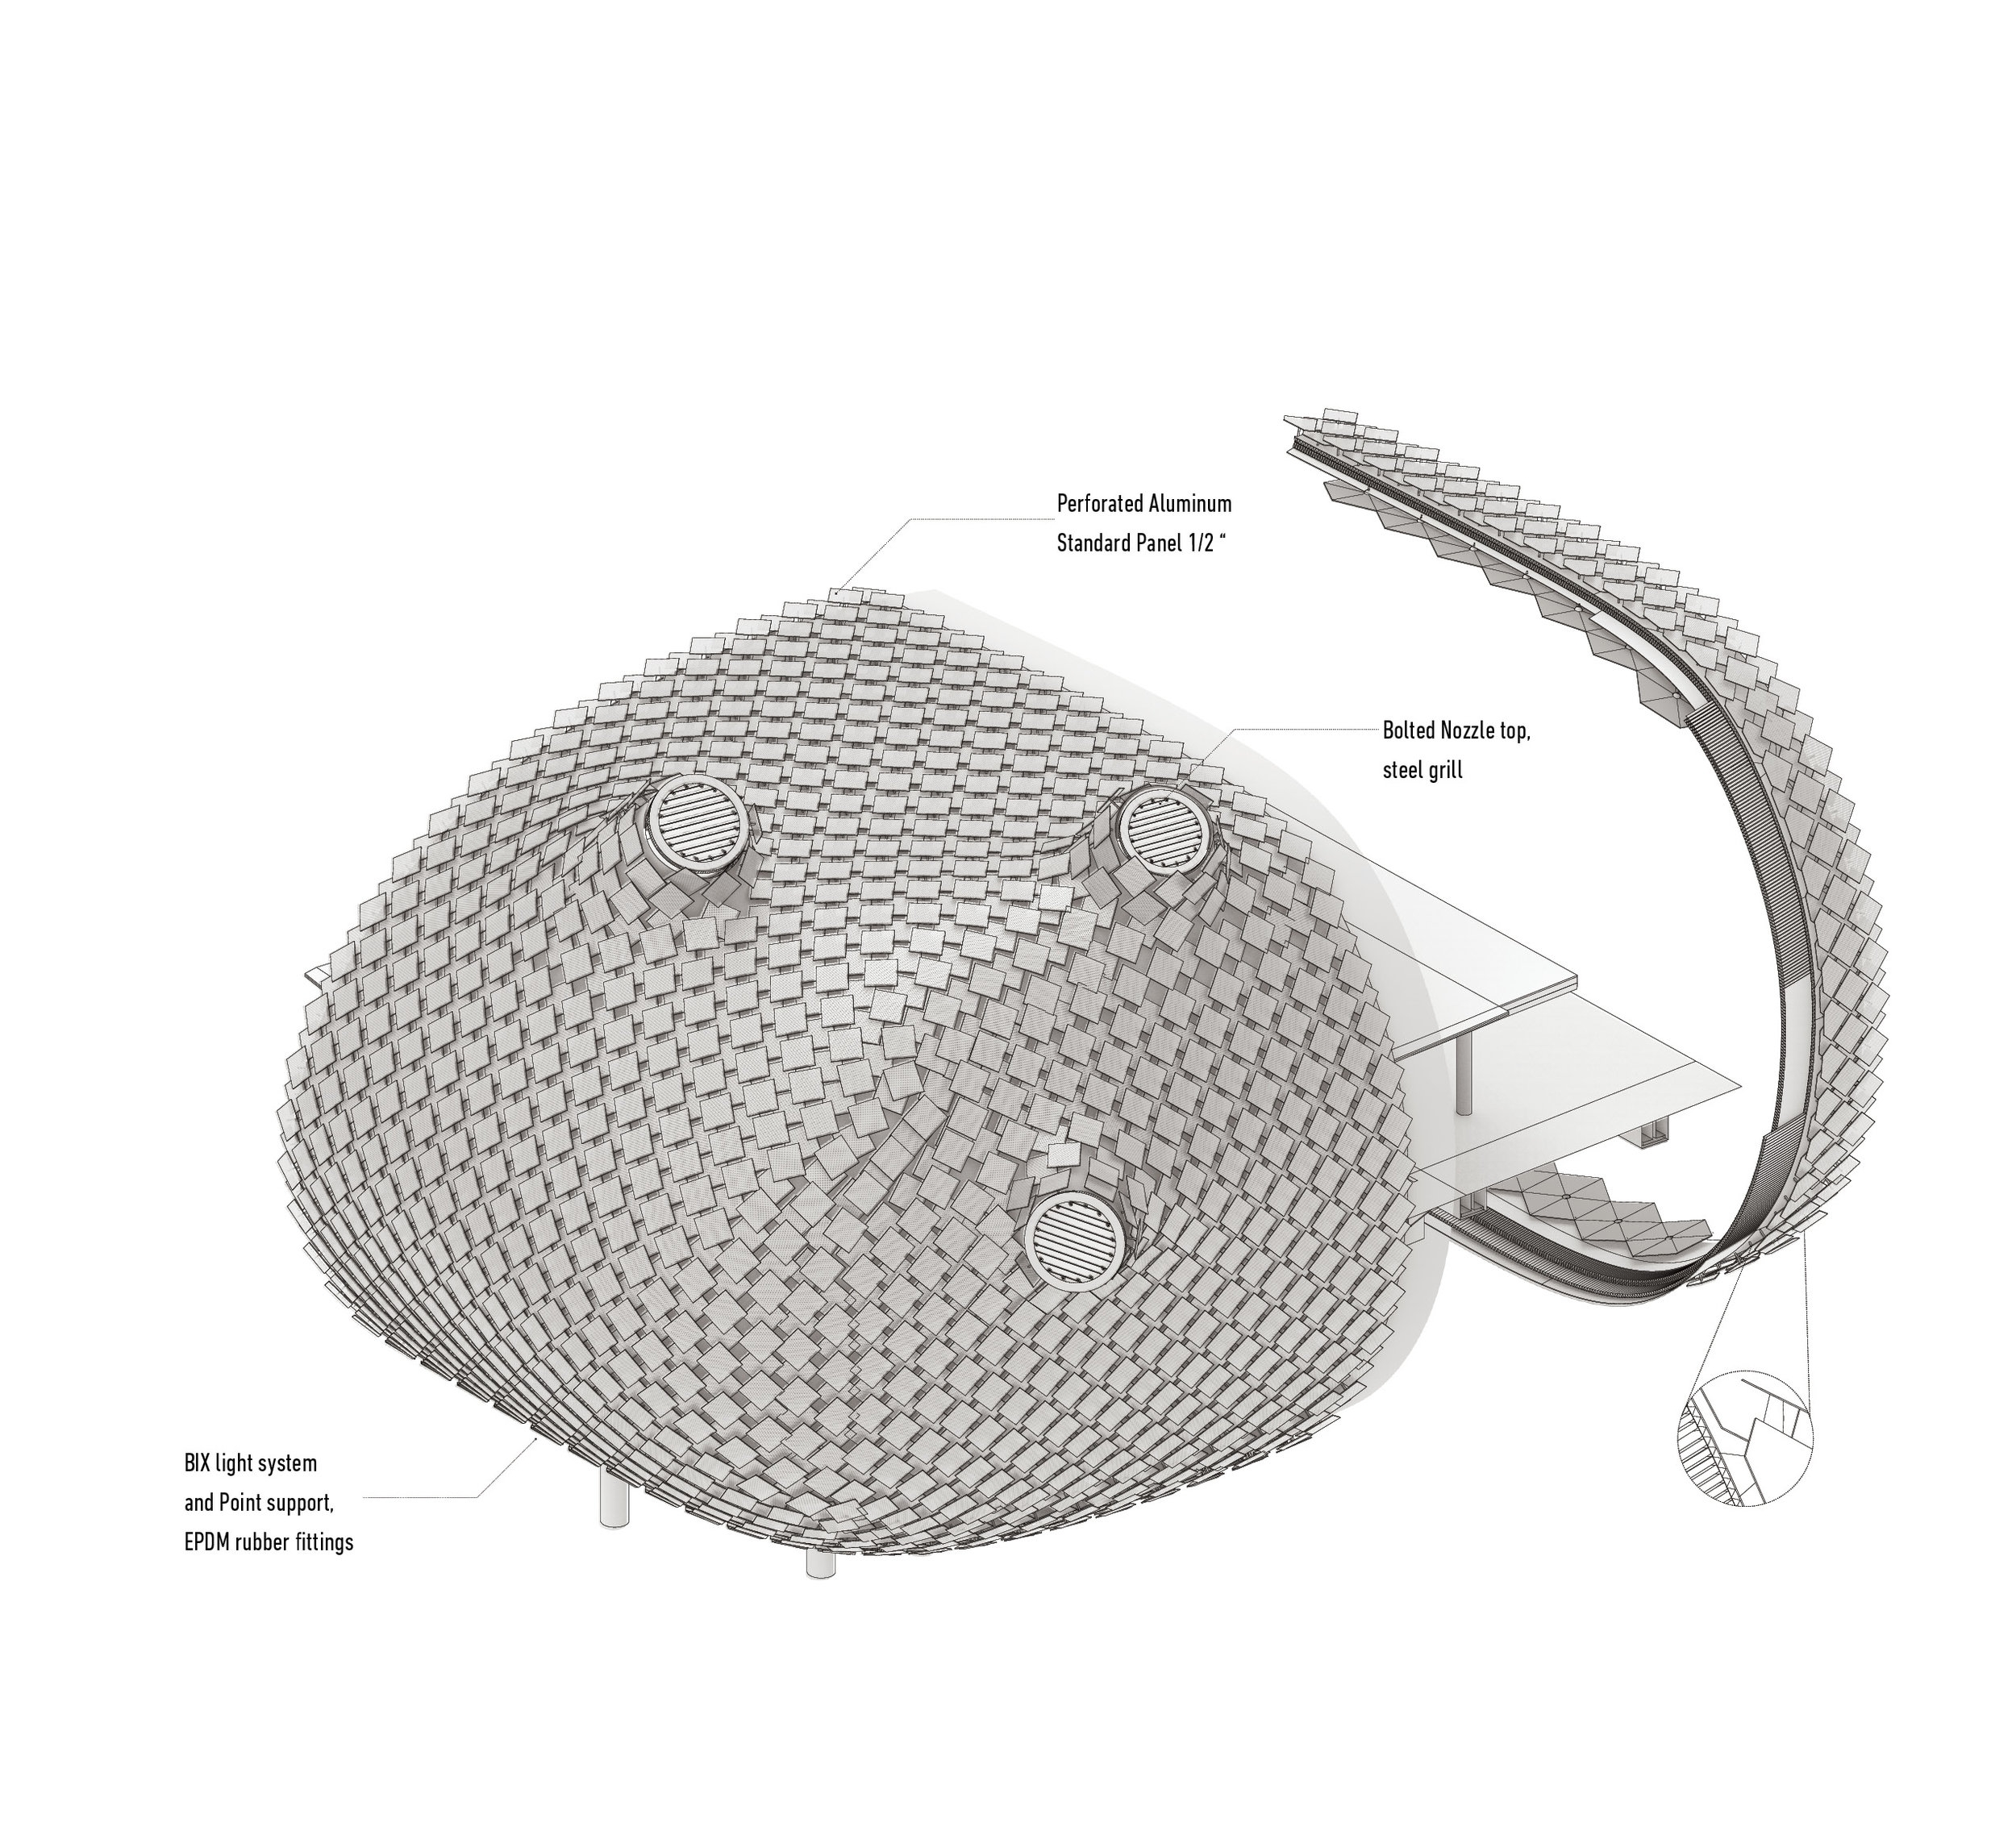 Precedent Tectonic Transformation   In the particular case of this transformation, the envelop system is layered with mesh, aluminum and stainless steel panel. The multiple material textures and sub system significantly alter the original case study.